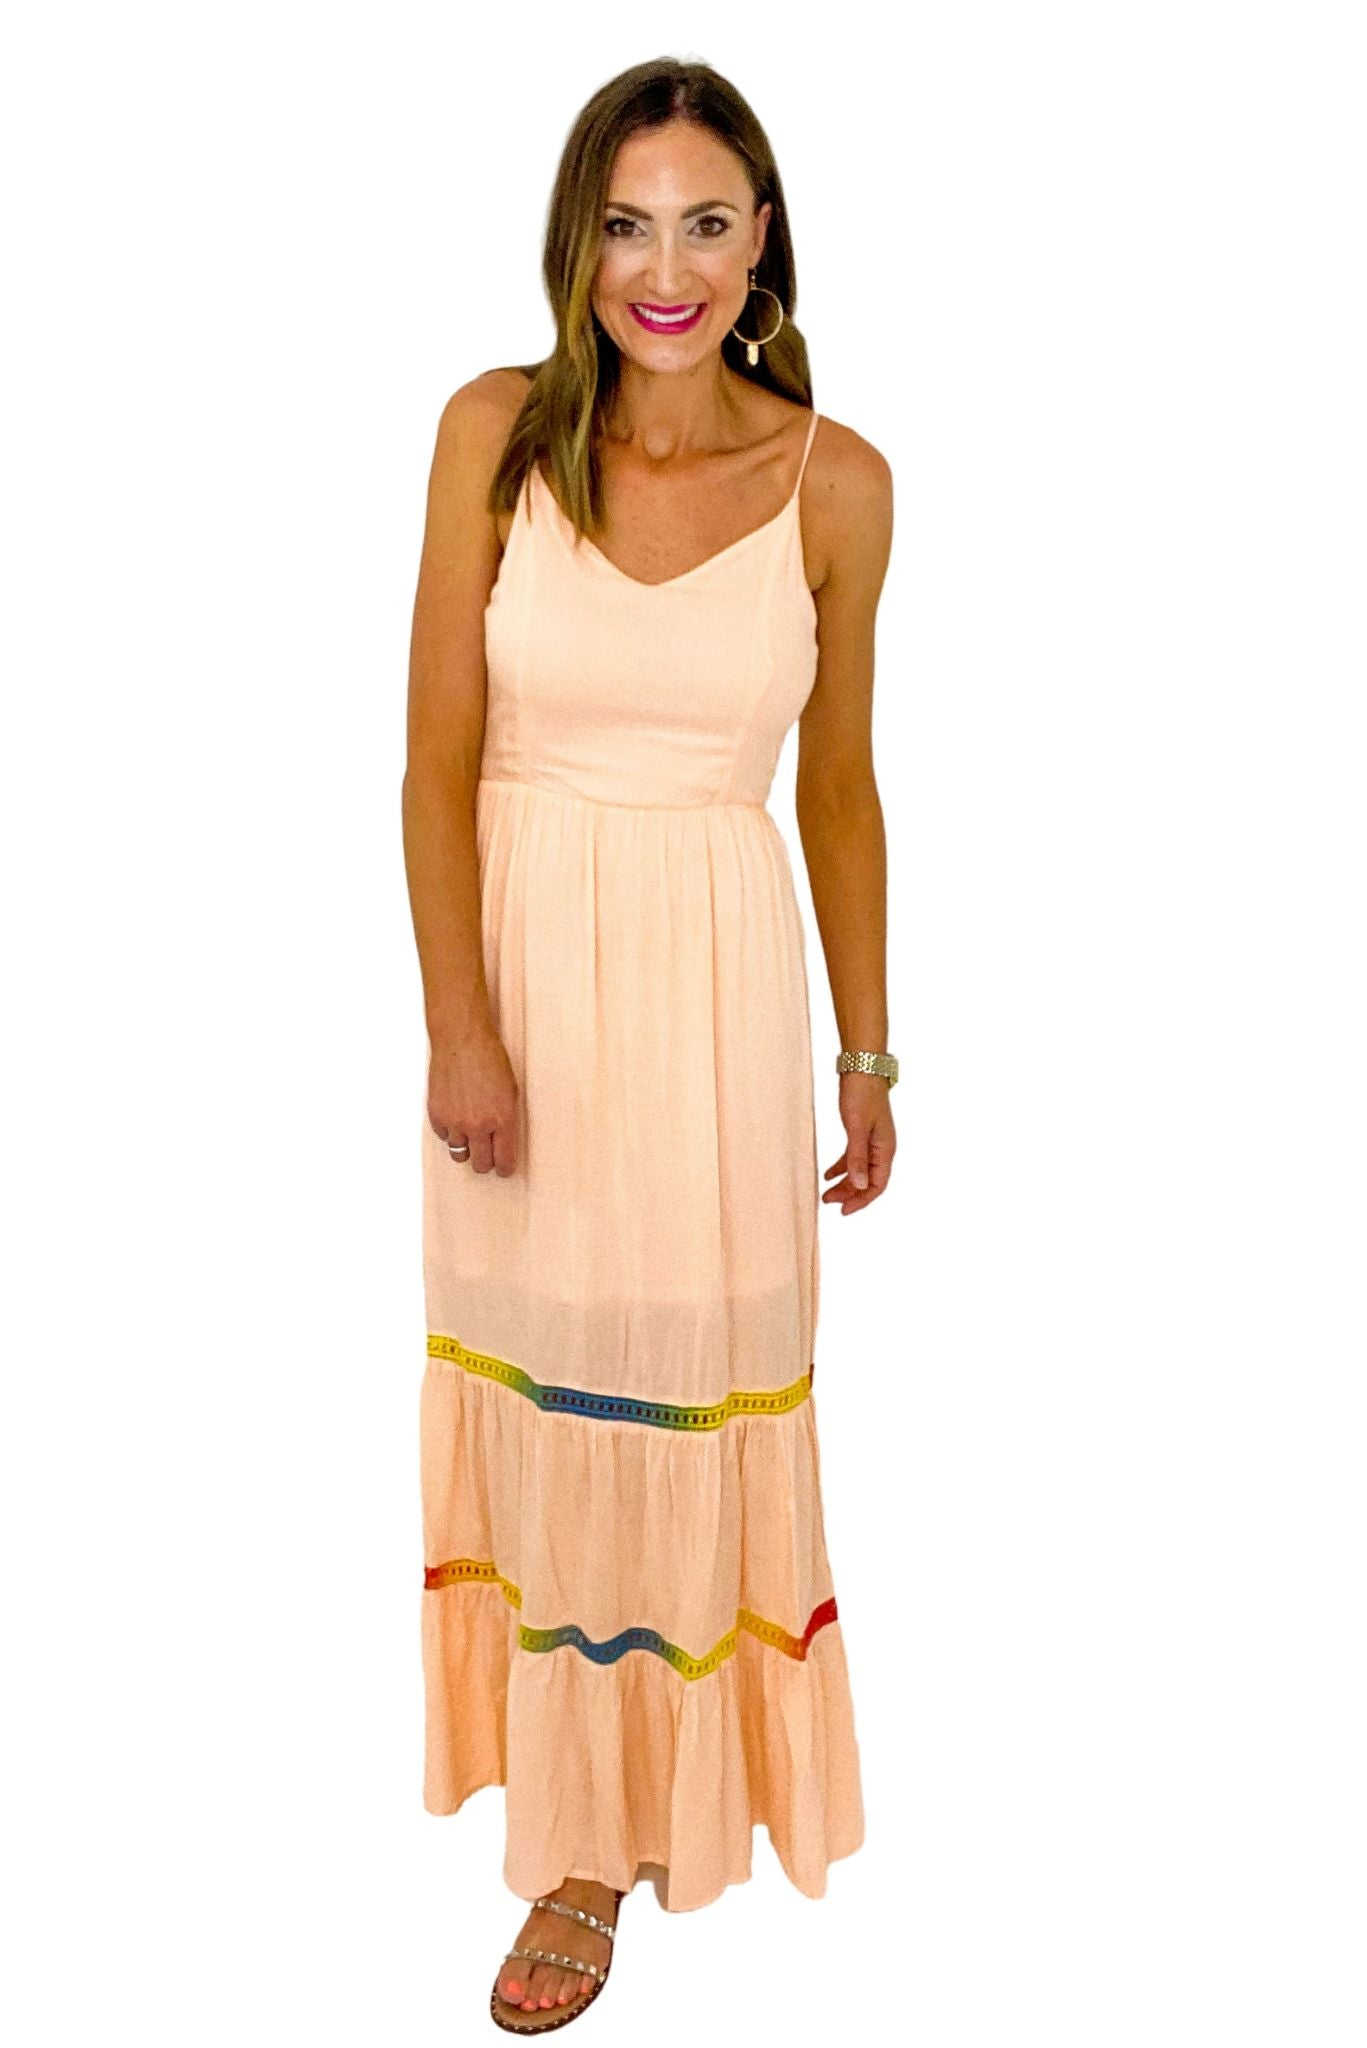 Peach Tiered Maxi Dress w/ Rainbow Crochet Detail *FINAL SALE*